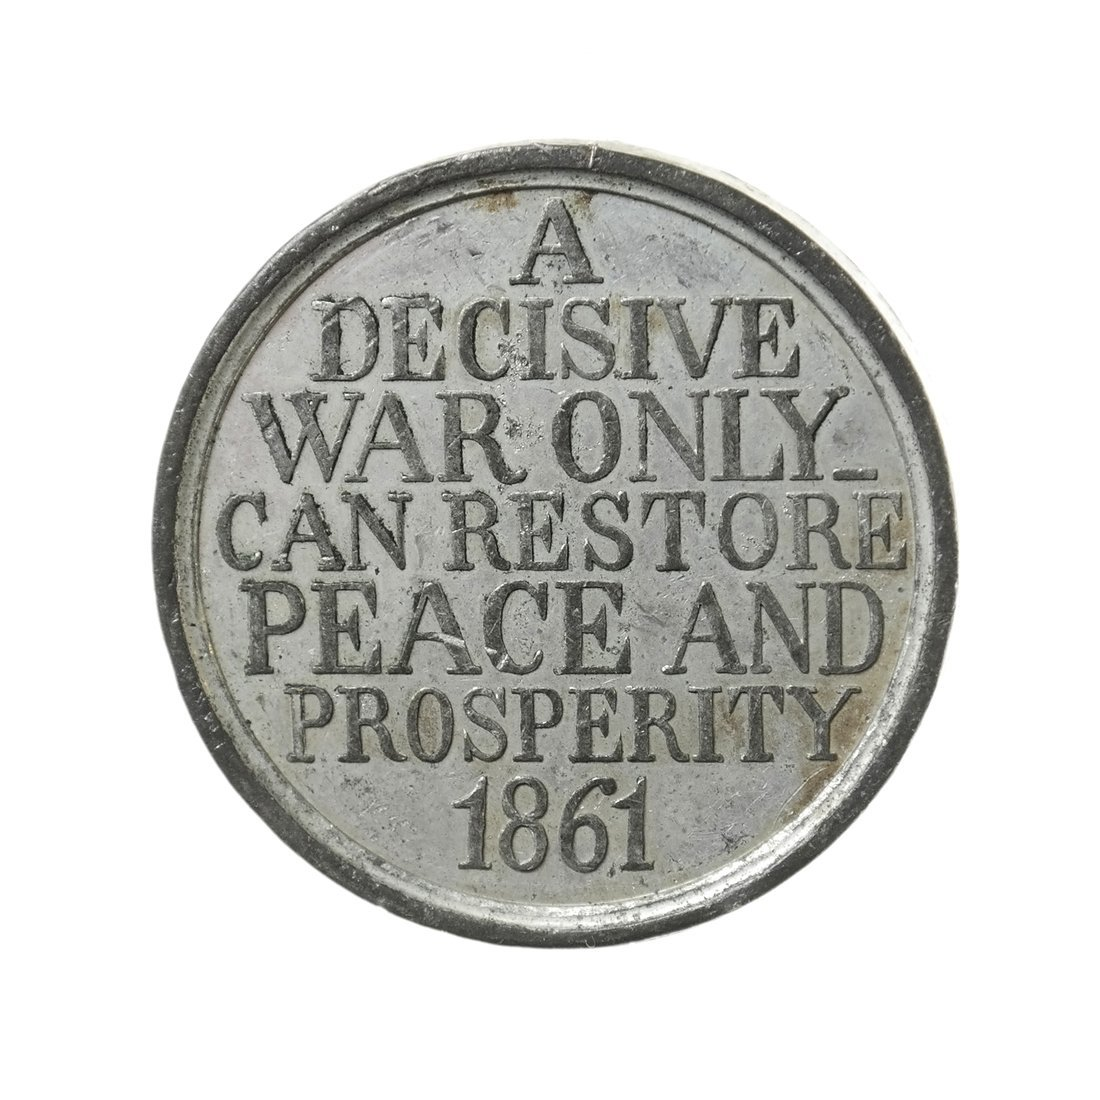 Decisive War Only Medal, 1861.